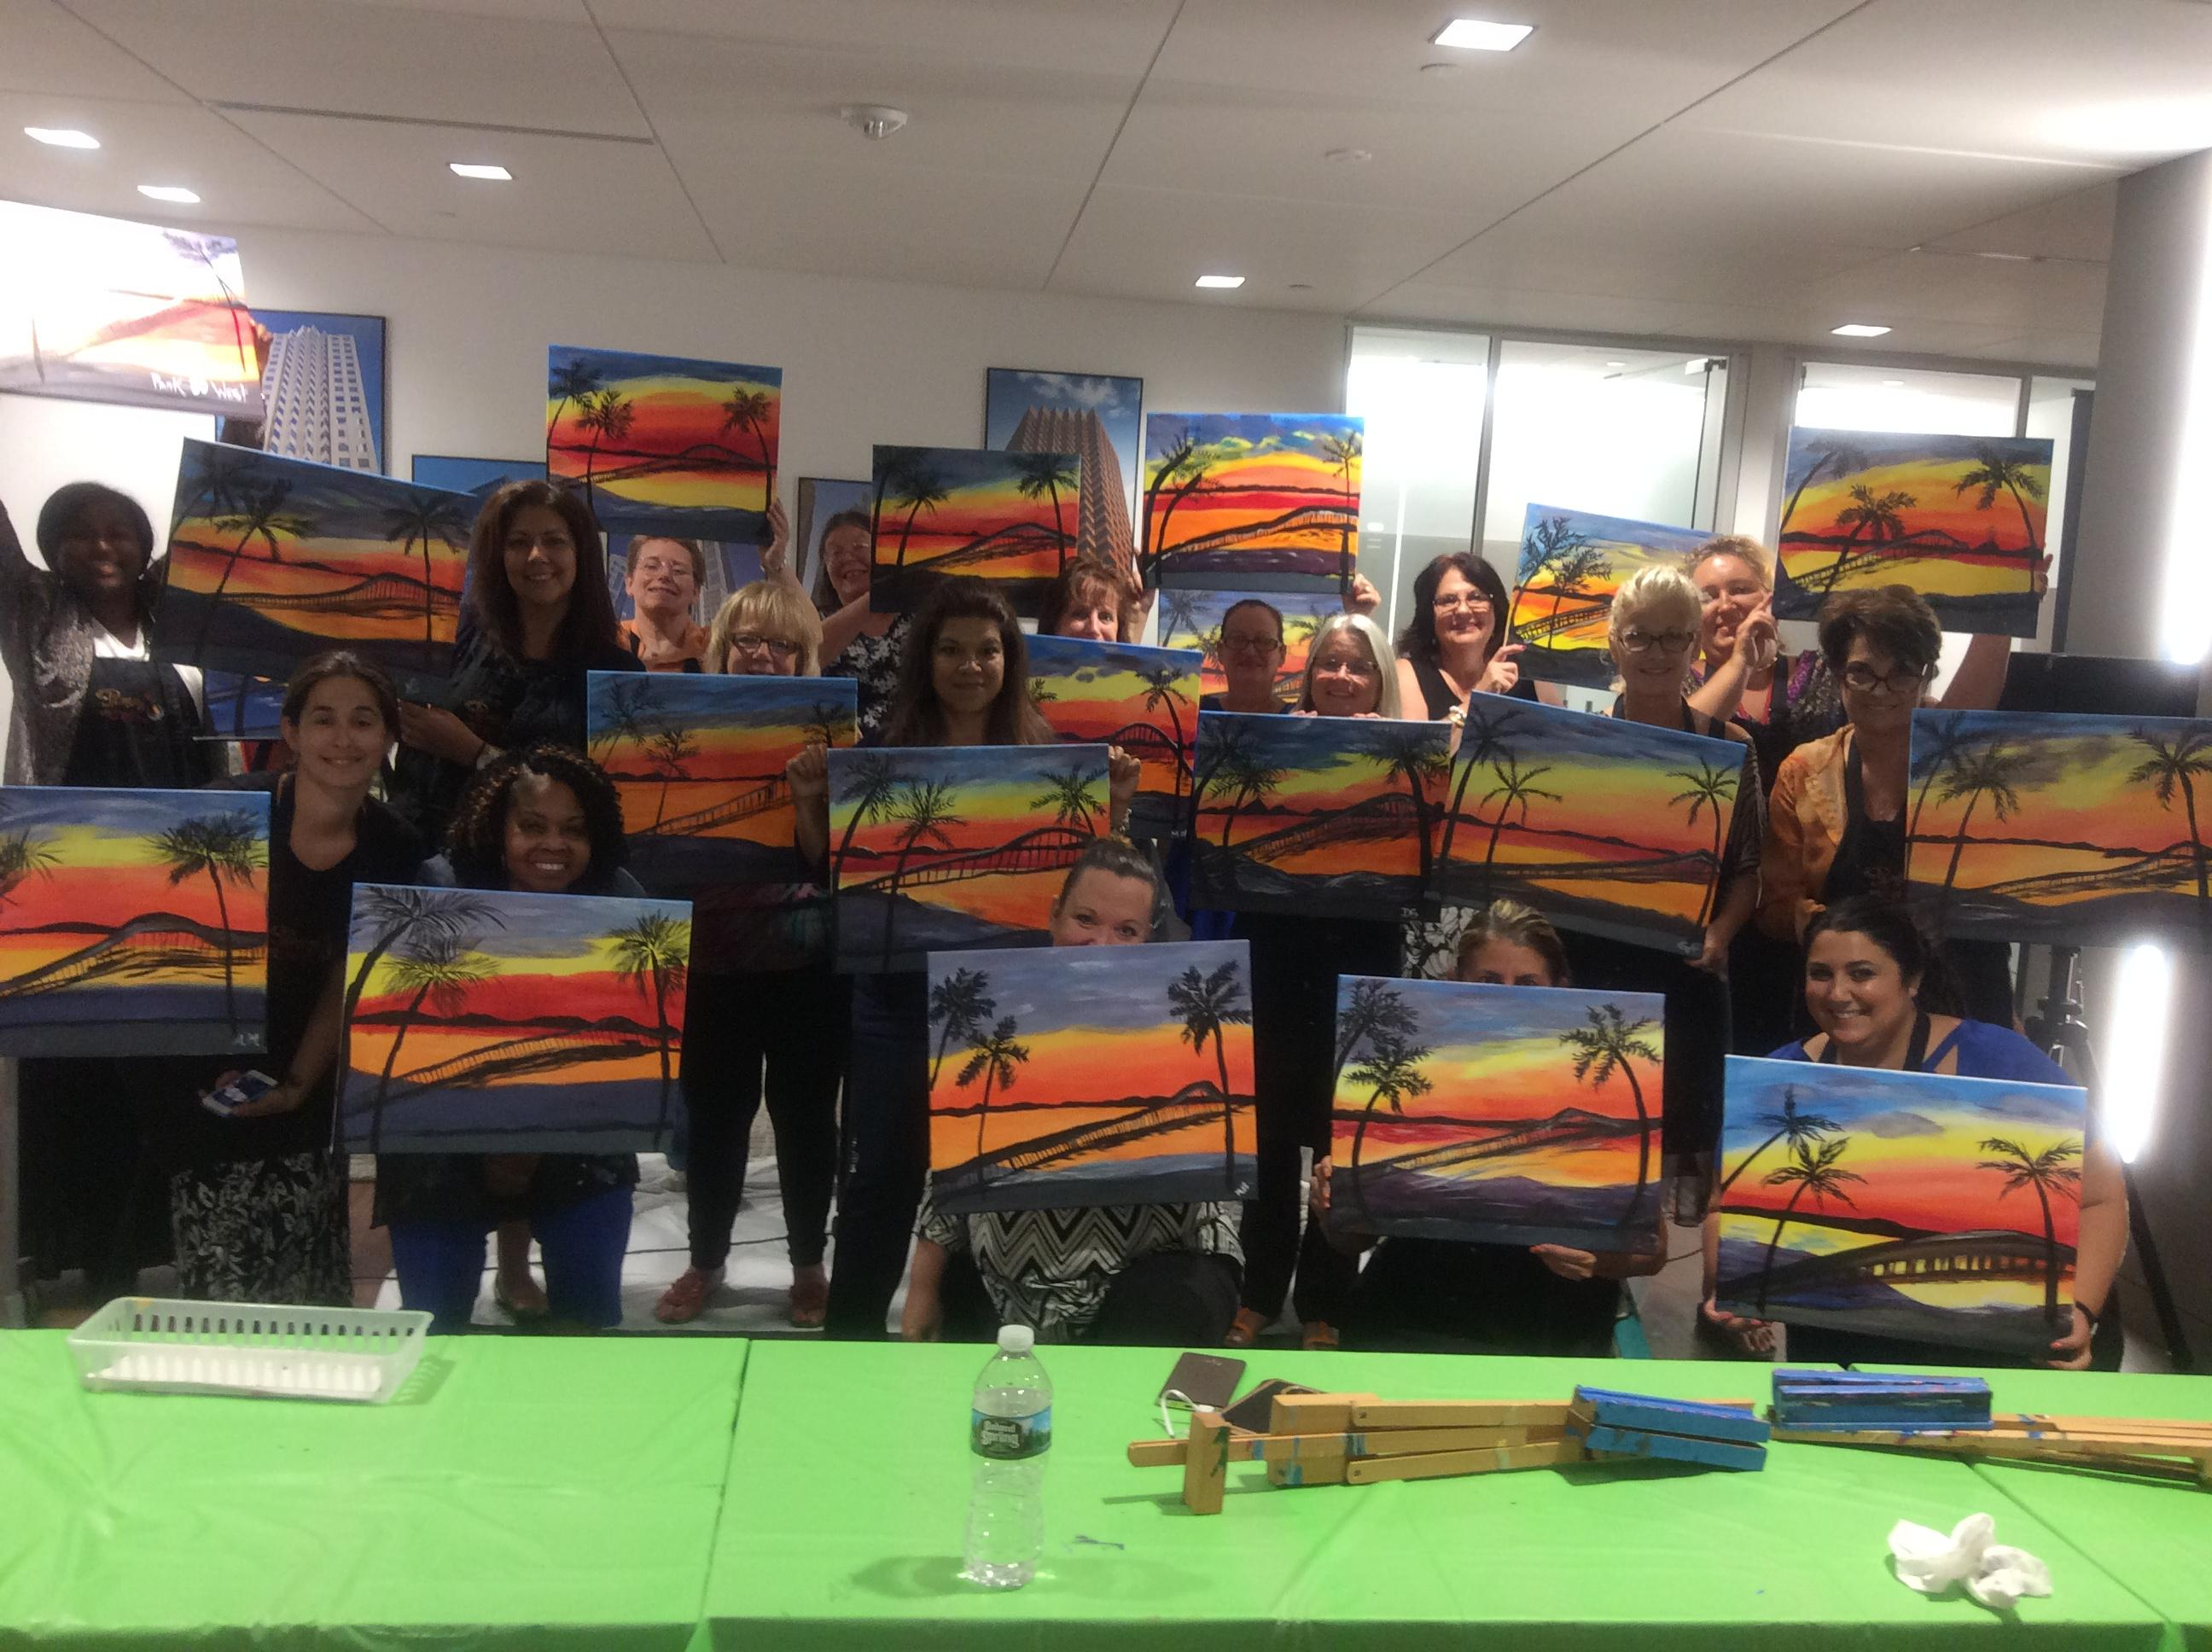 Painting With A Twist 200 Rock Rd Glen Rock Nj 07452 Yp Com